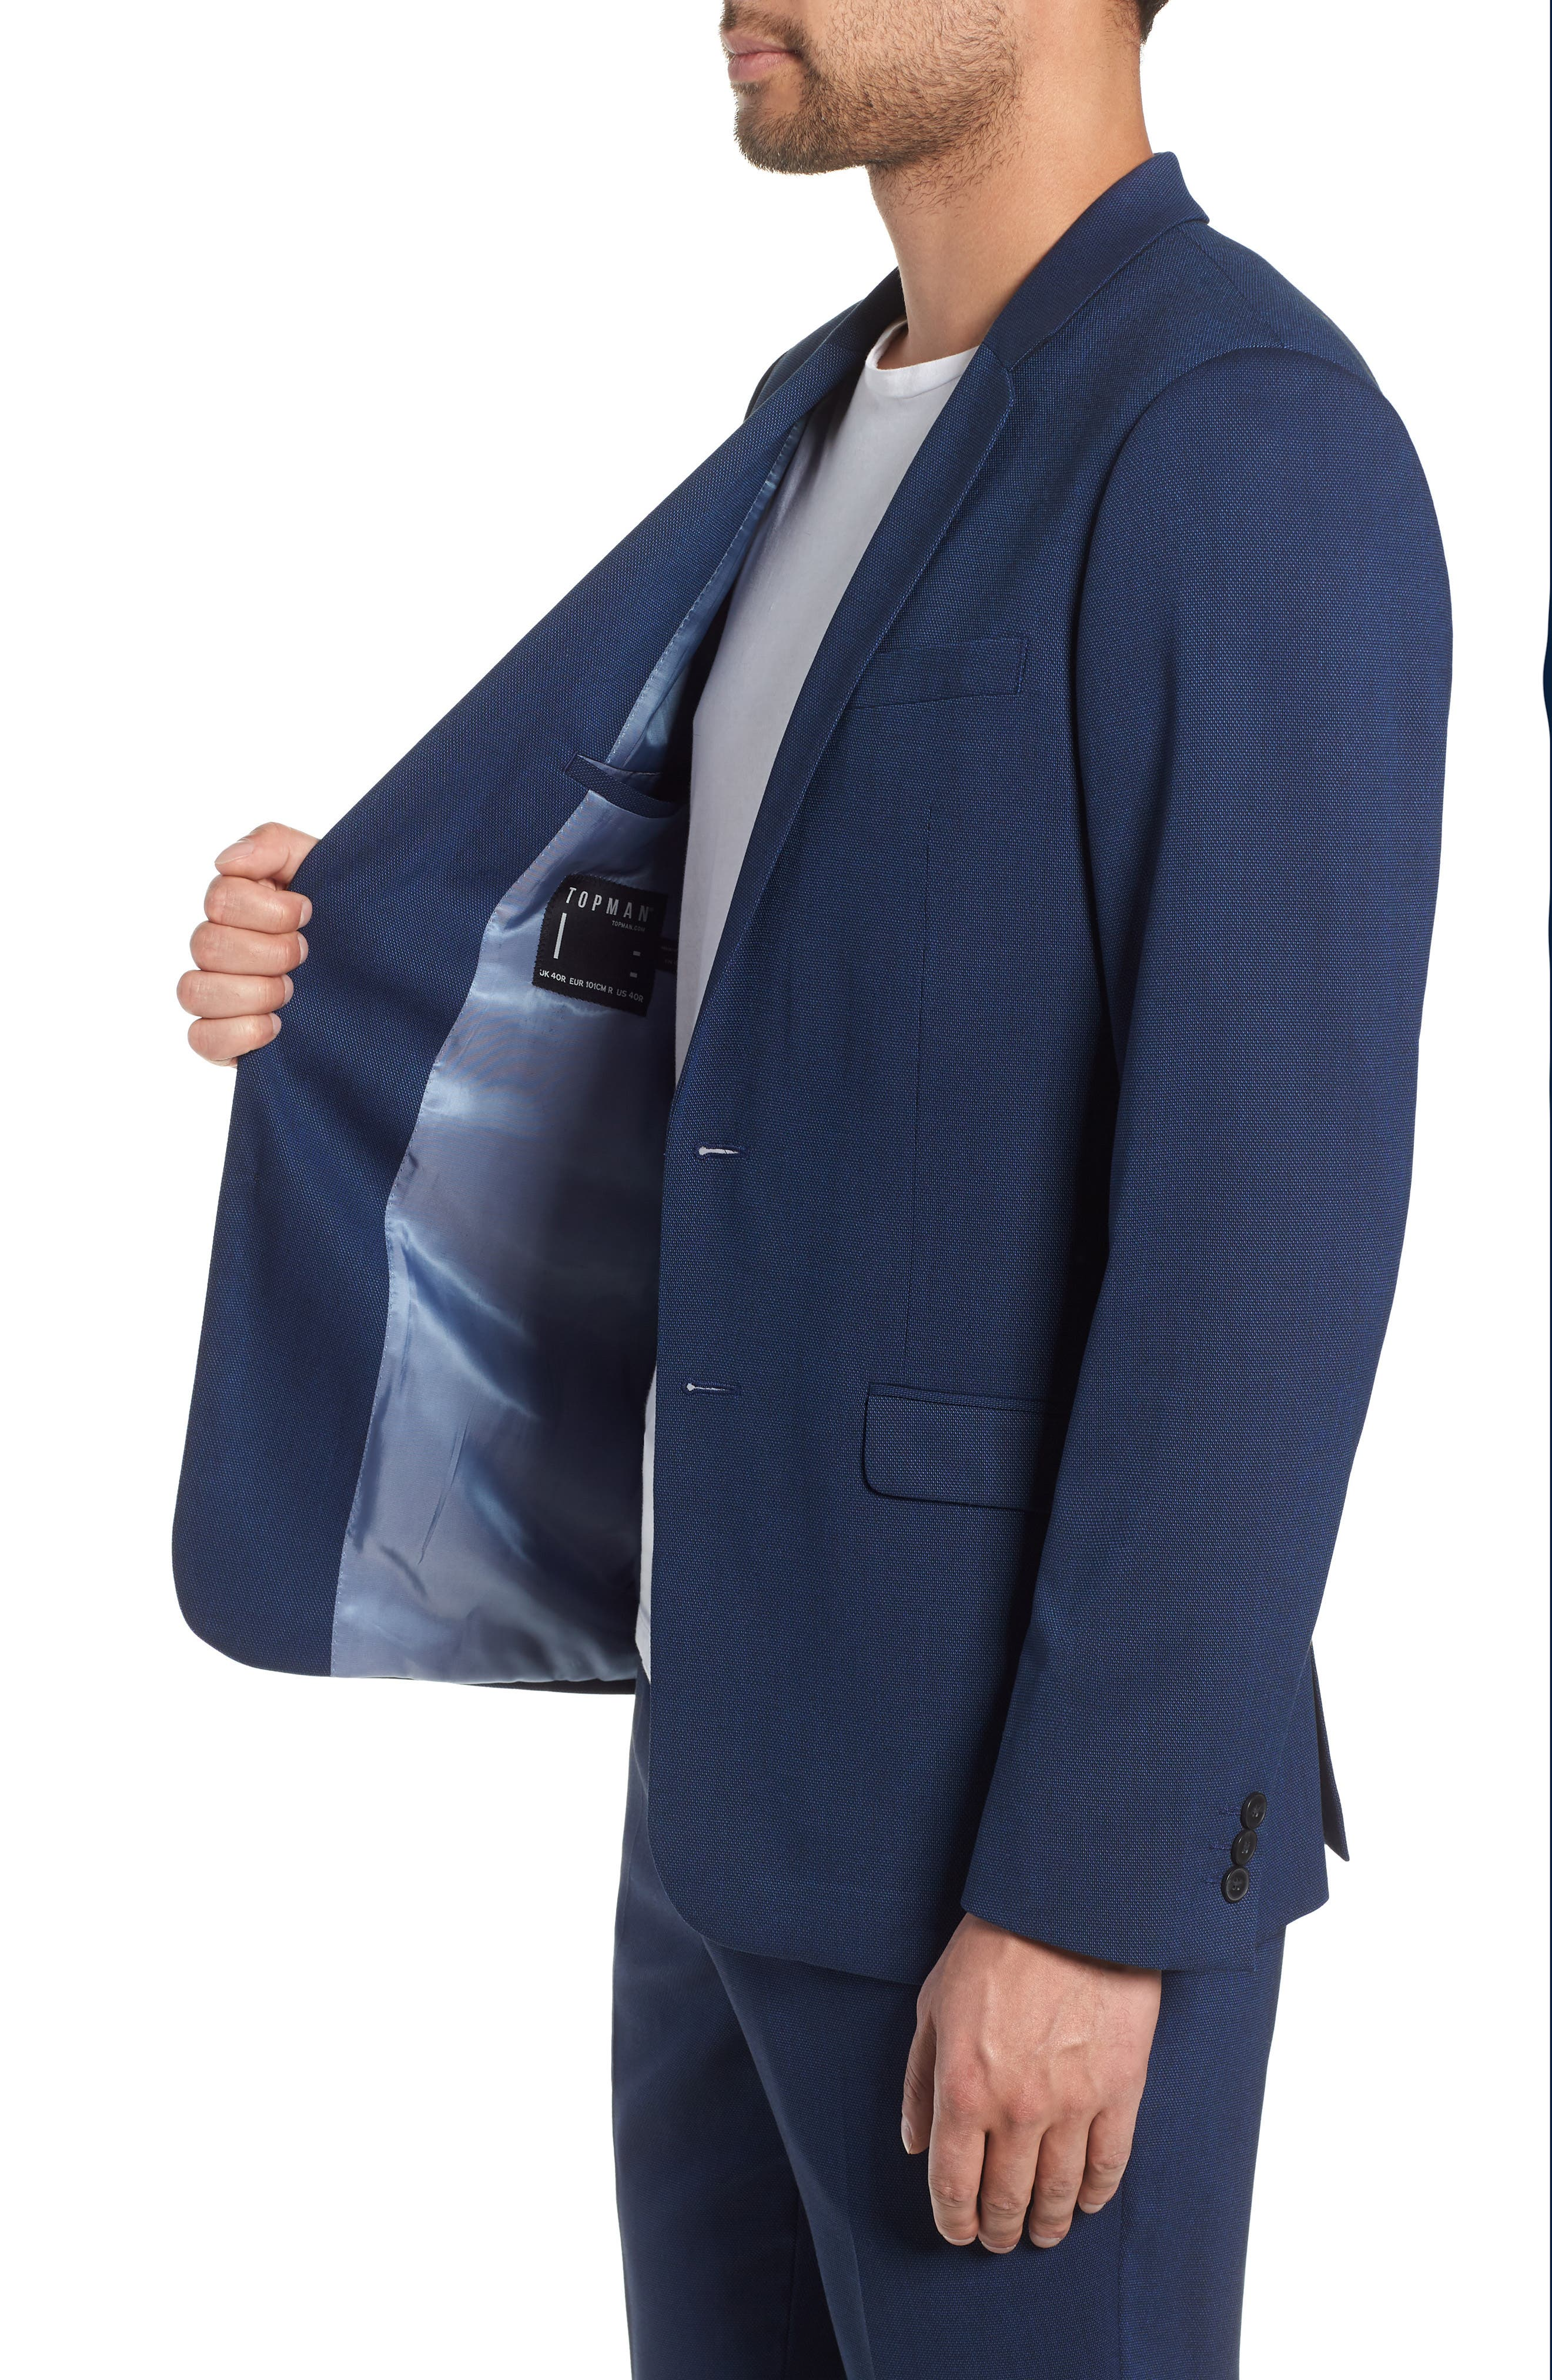 TOPMAN, Skinny Fit Suit Jacket, Alternate thumbnail 4, color, BLUE